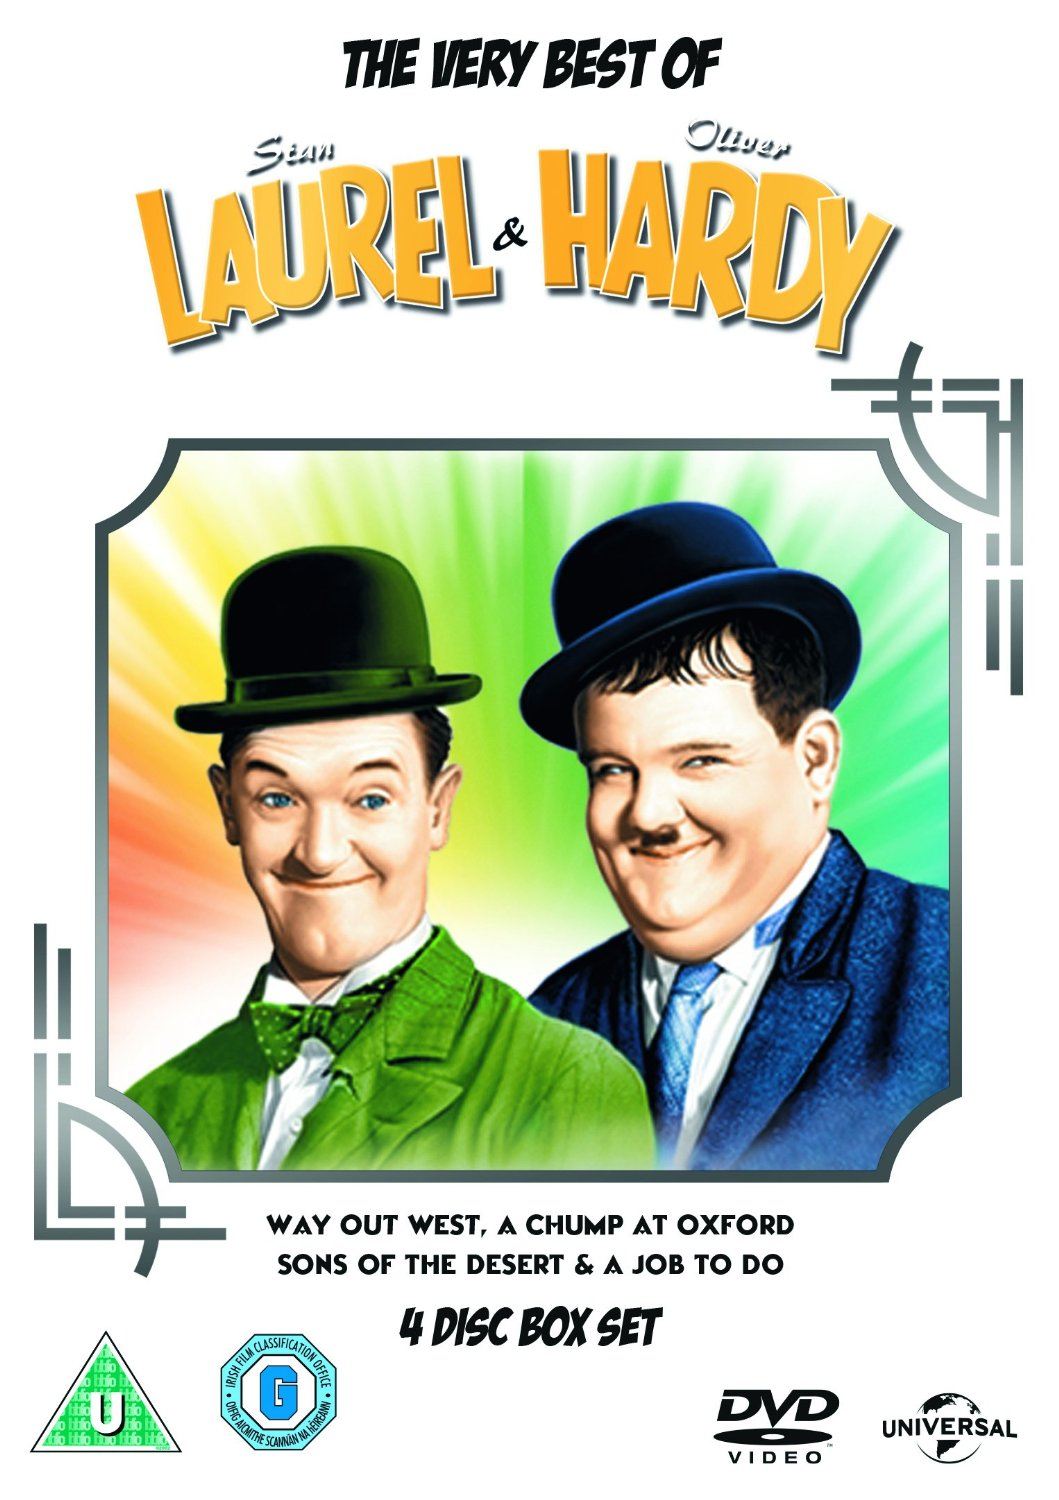 The Very Best Of Laurel And Hardy (DVD)